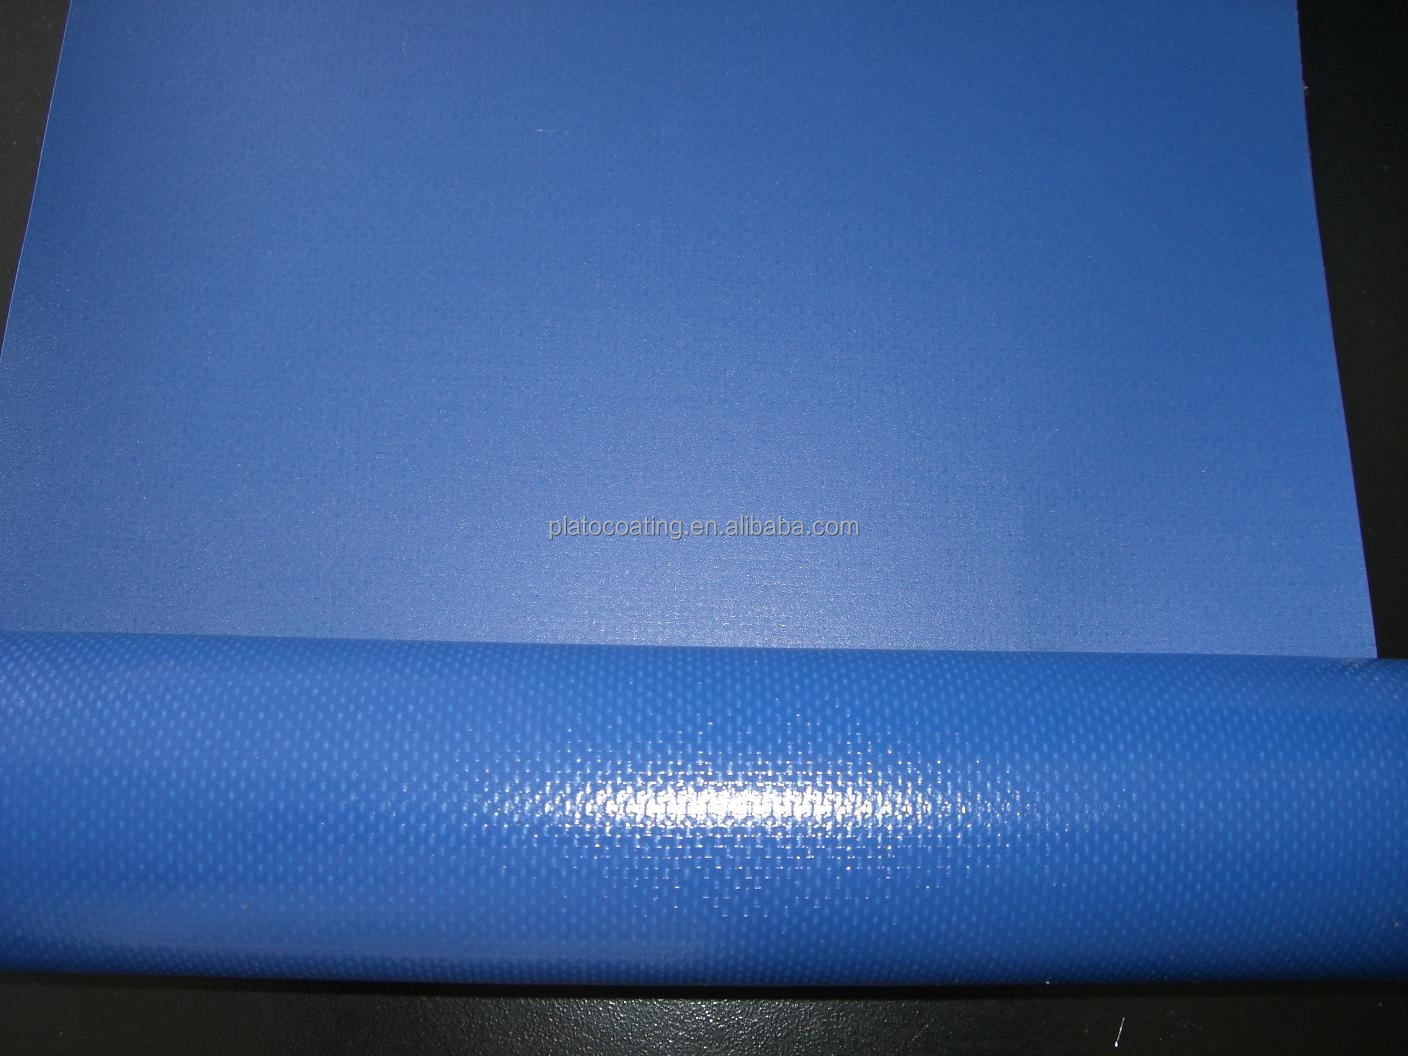 PVC coated vinyl fabric /Tarpaulin Roll or PVC Tarpaulin Sheet or PVC Tarpaulin Material